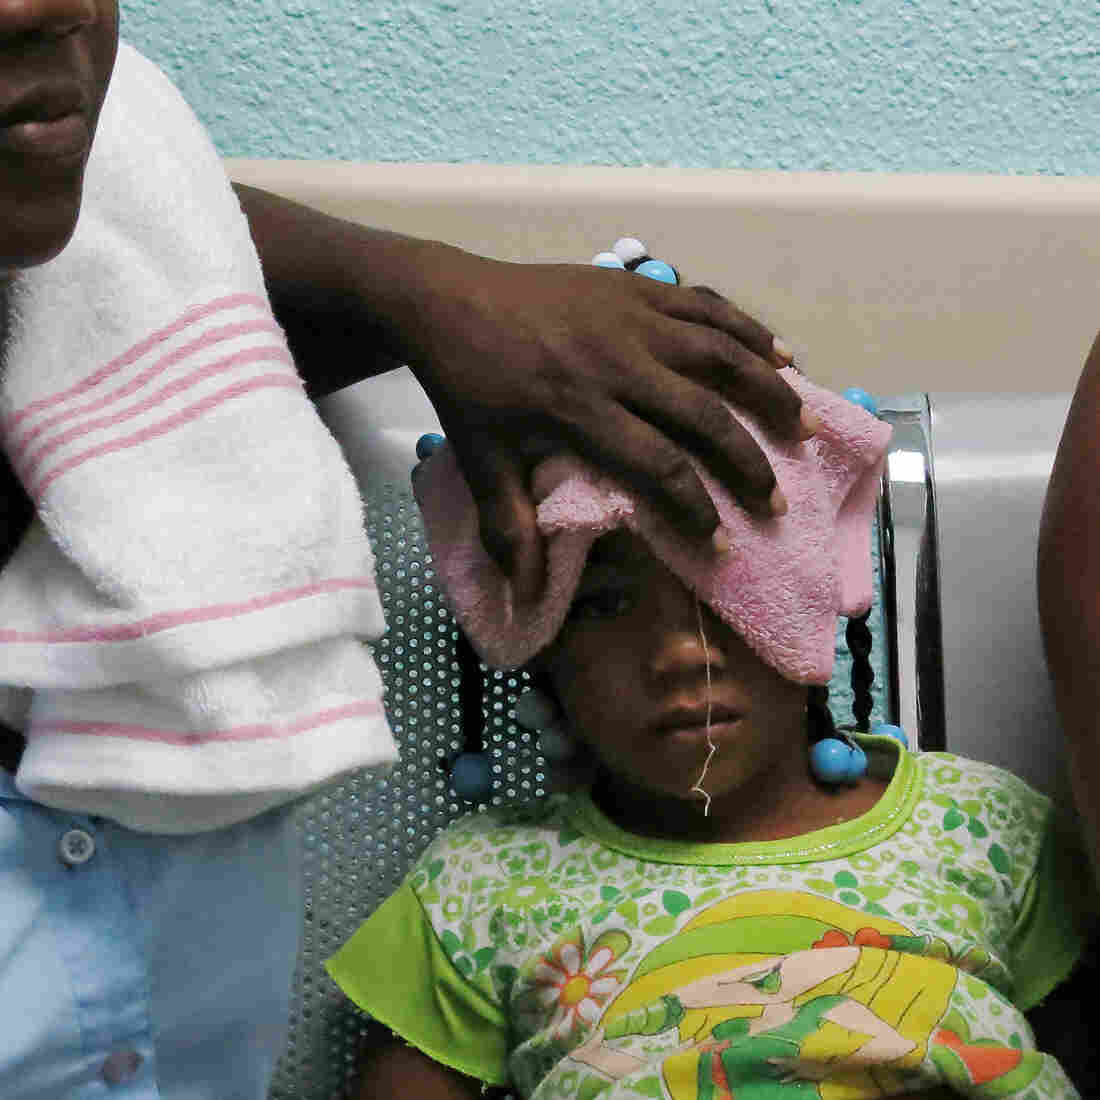 Sick with chikungunya, Karla Sepulveda, 5, waits in a public hospital with her grandmother in Boca Chica, Dominican Republic, on May 15. The Caribbean nation has reported more than 100,000 cases this year.